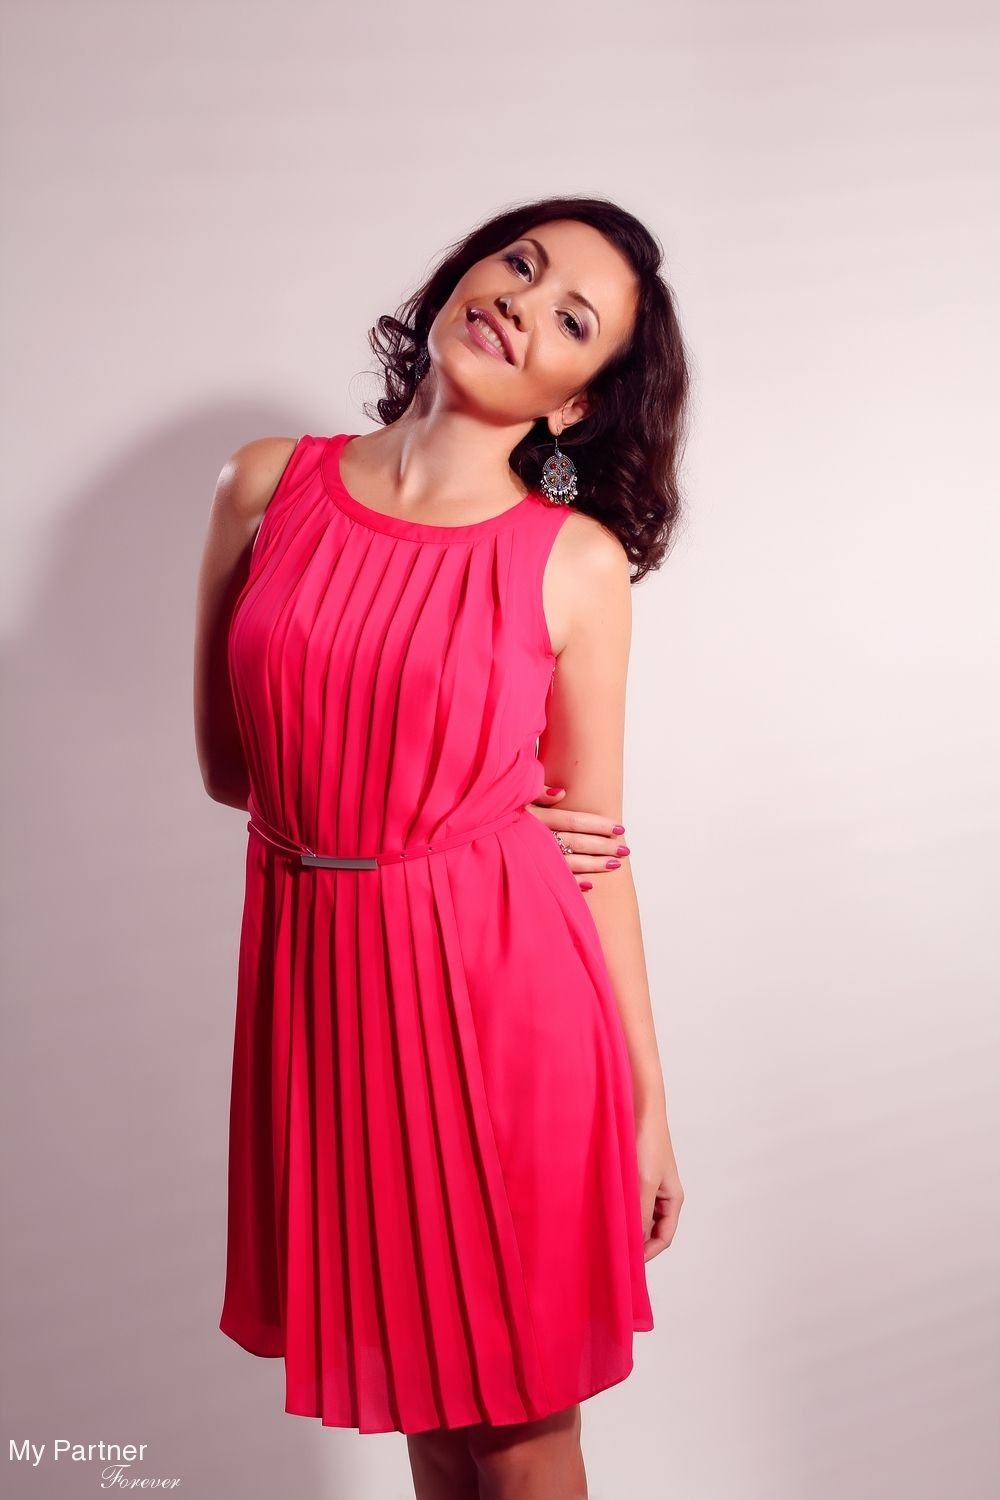 Marriage Agency to Meet Ekaterina from Novosibirsk, Russia